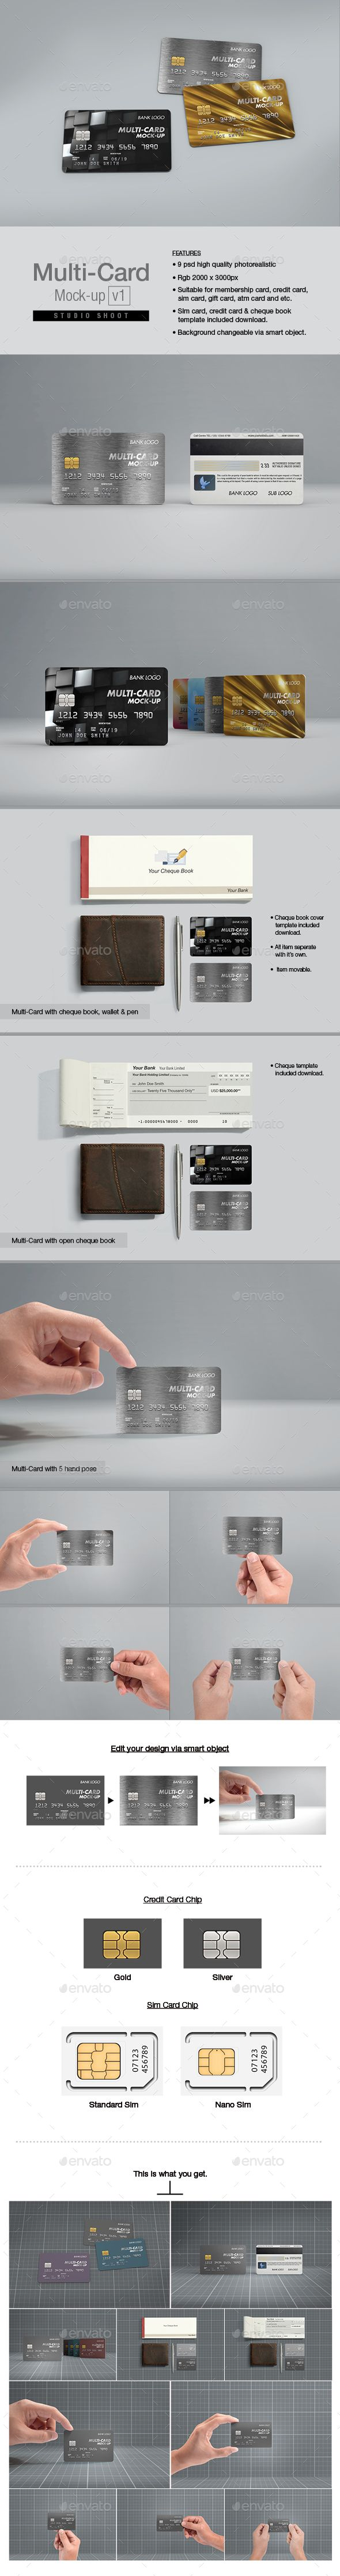 Multi-Card Mock-up v19 psd high quality render image. Rgb 2000x3000px. Suitable for membership card, credit card, gift card, atm c